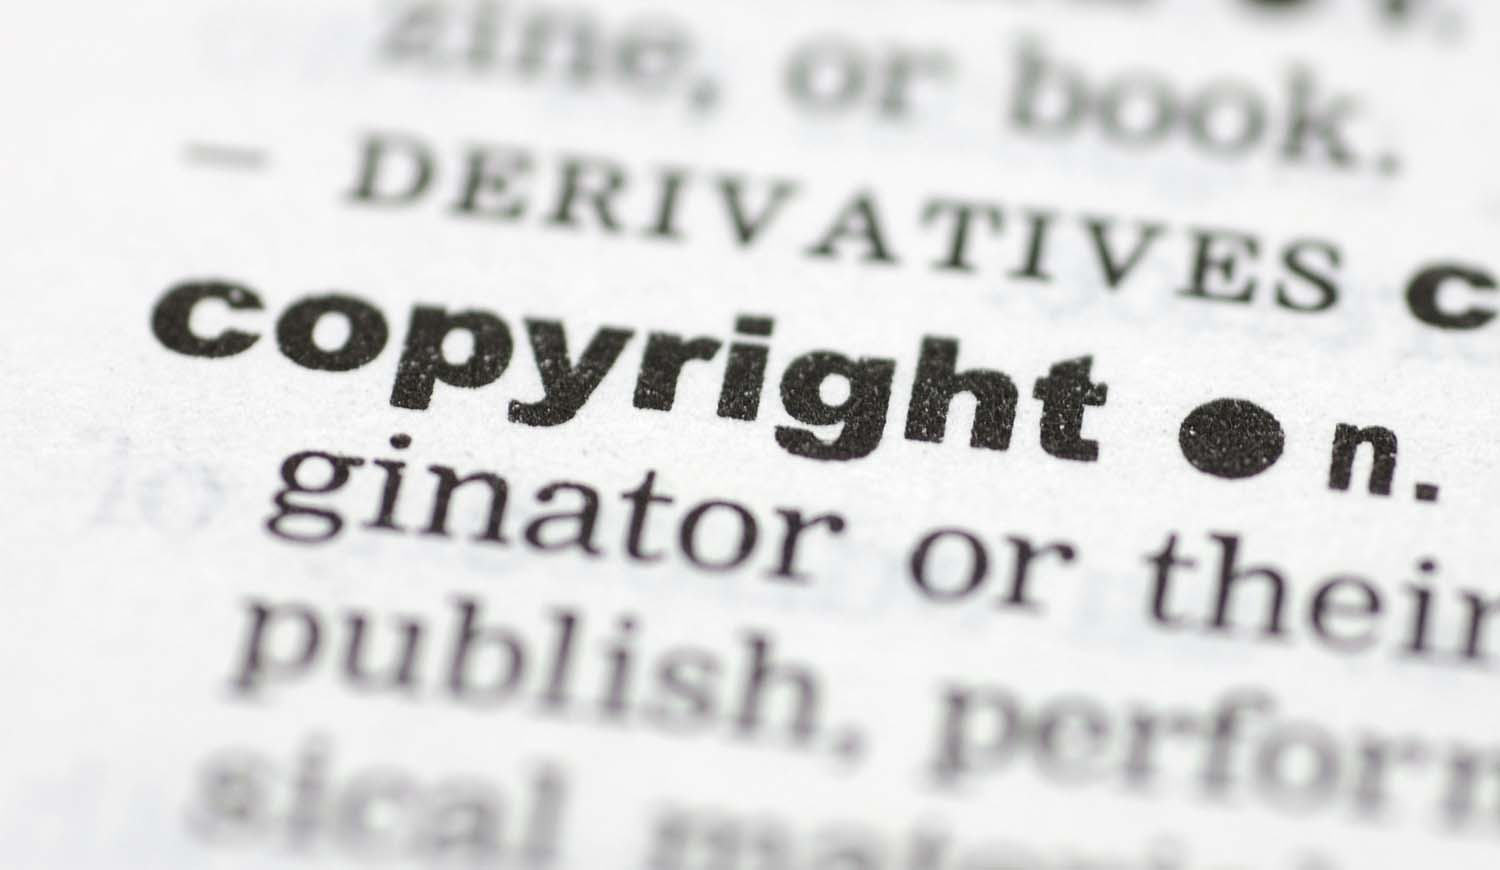 Own My IP launches to request and assign copyright for creative work